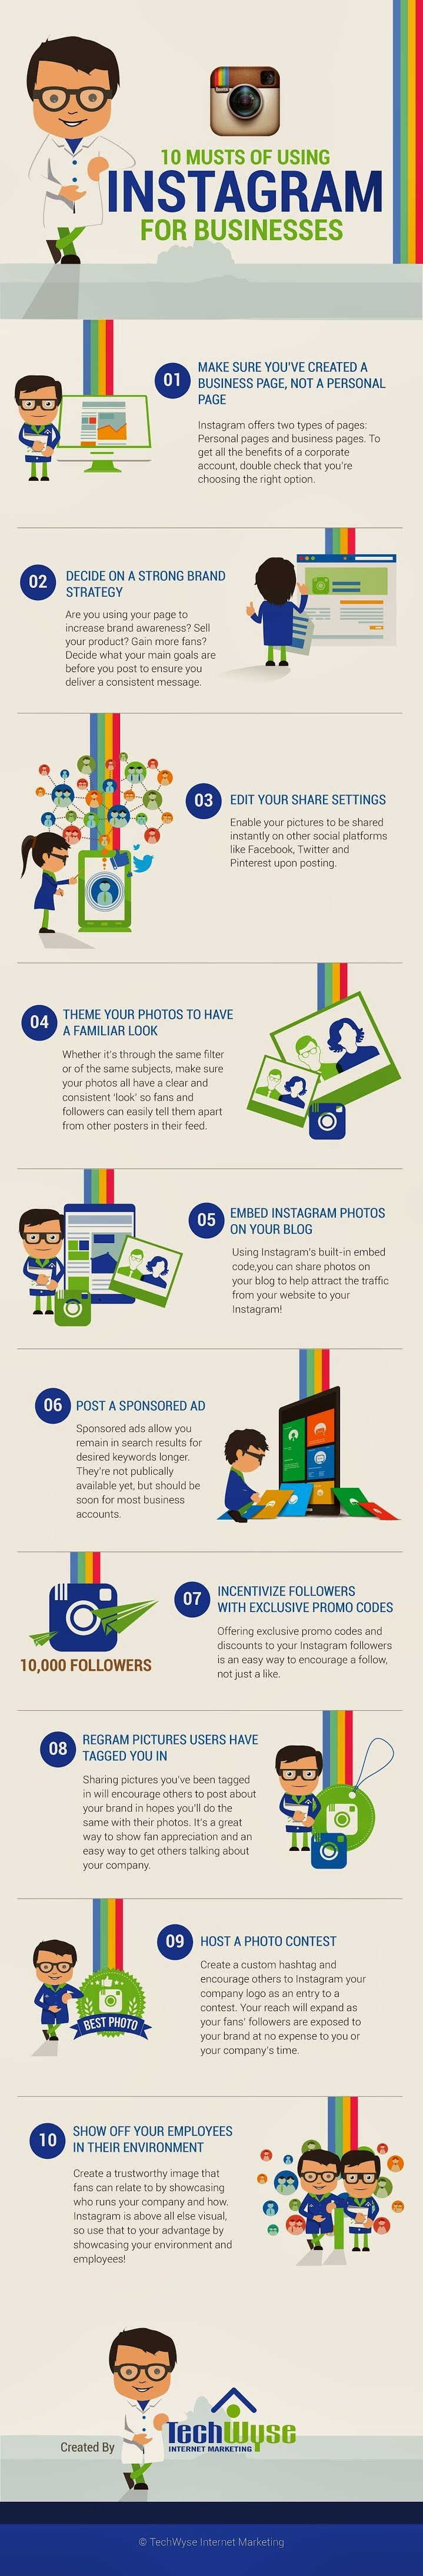 10 Musts of Using Instagram